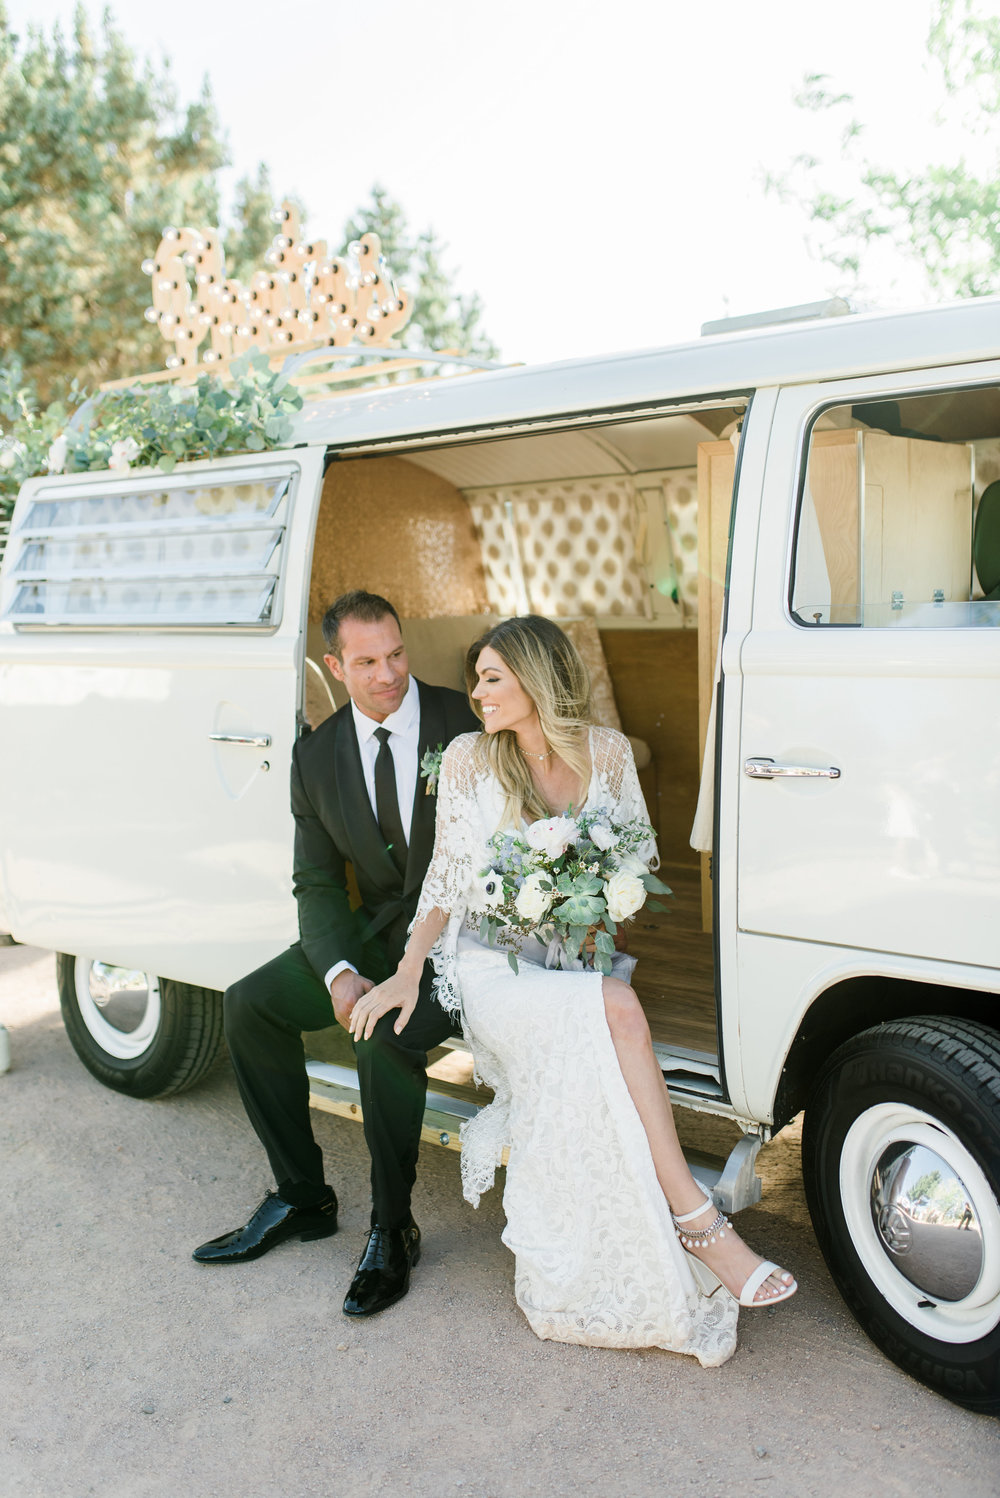 Boho Sedona Wedding - Photo Booth Bus